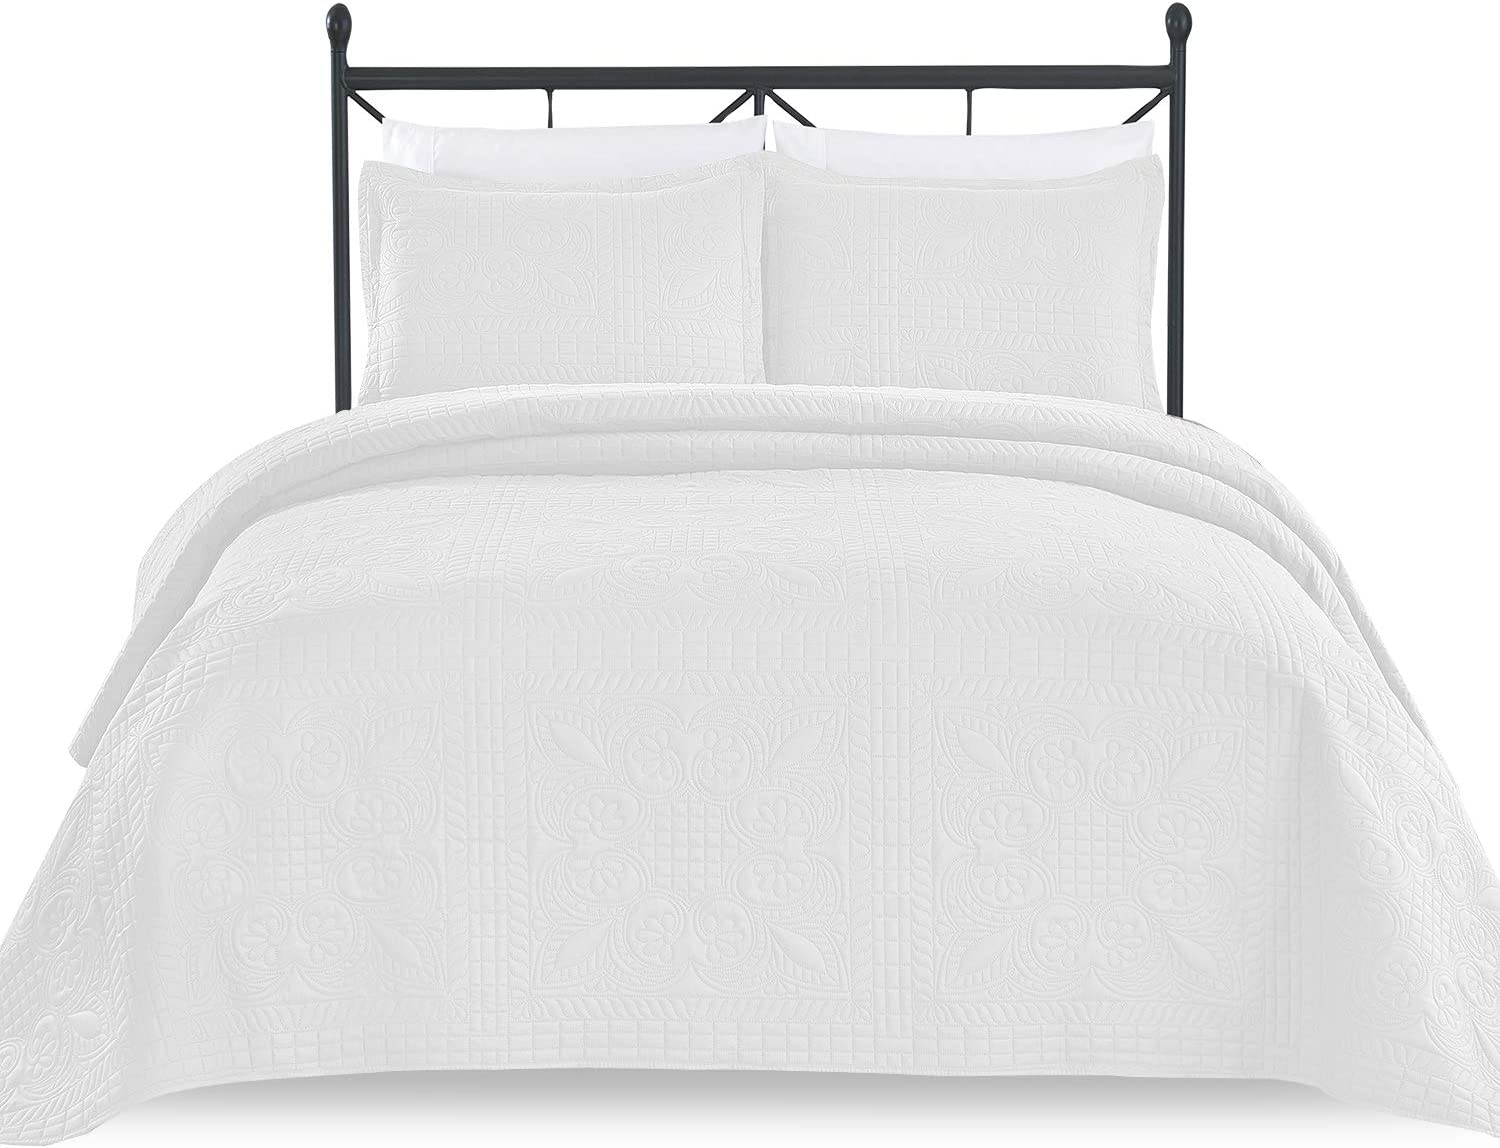 Luxe Bedding 3-piece Oversized Quilted Bedspread Coverlet Set (King/CalKing, Spring/White)